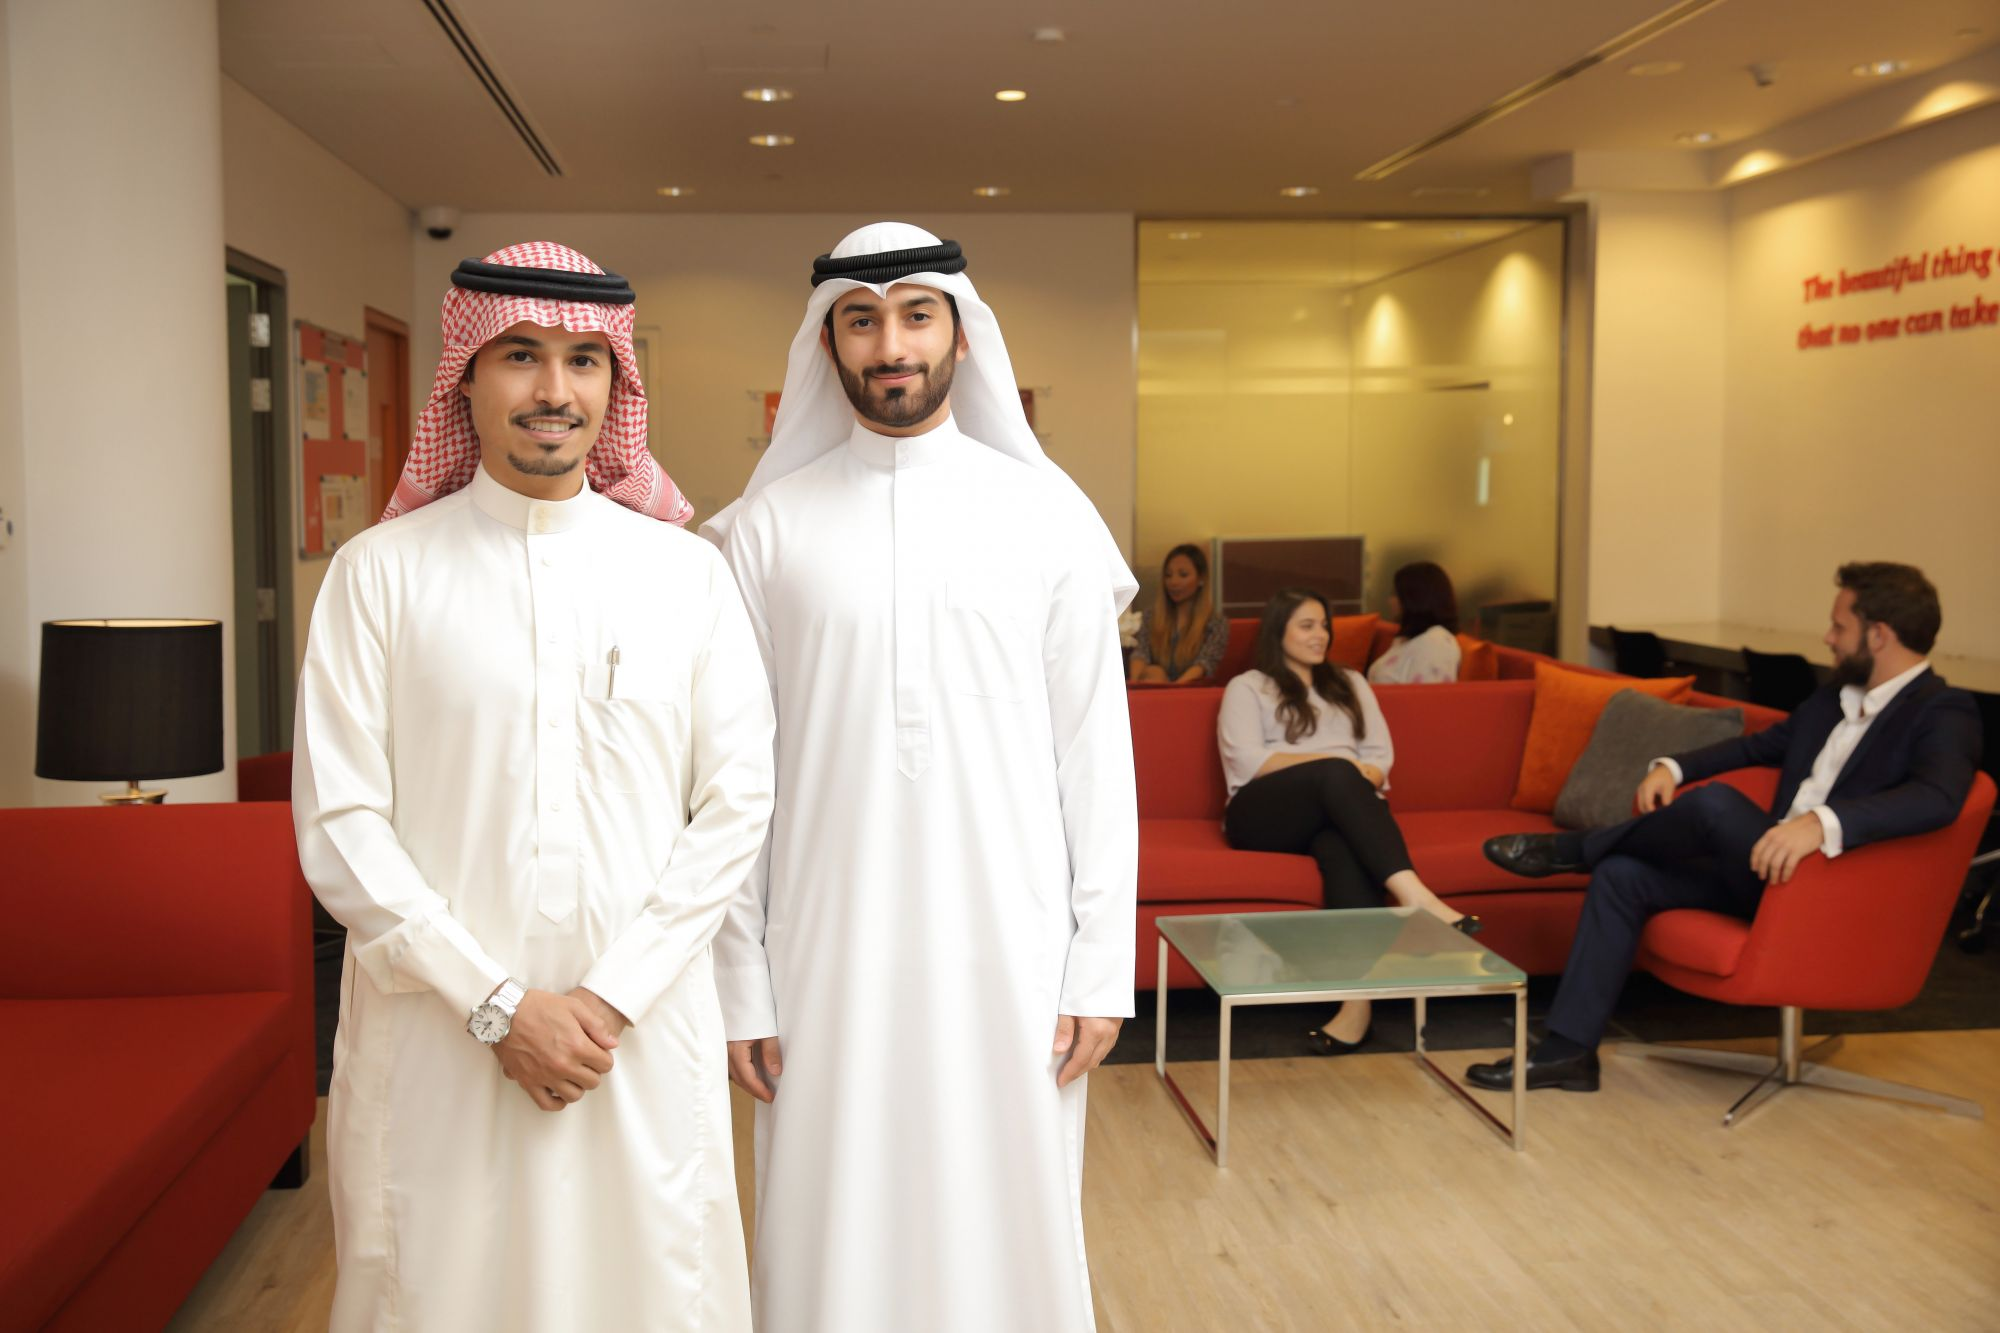 VAT Training in KSA Course | PwC's Academy Middle East